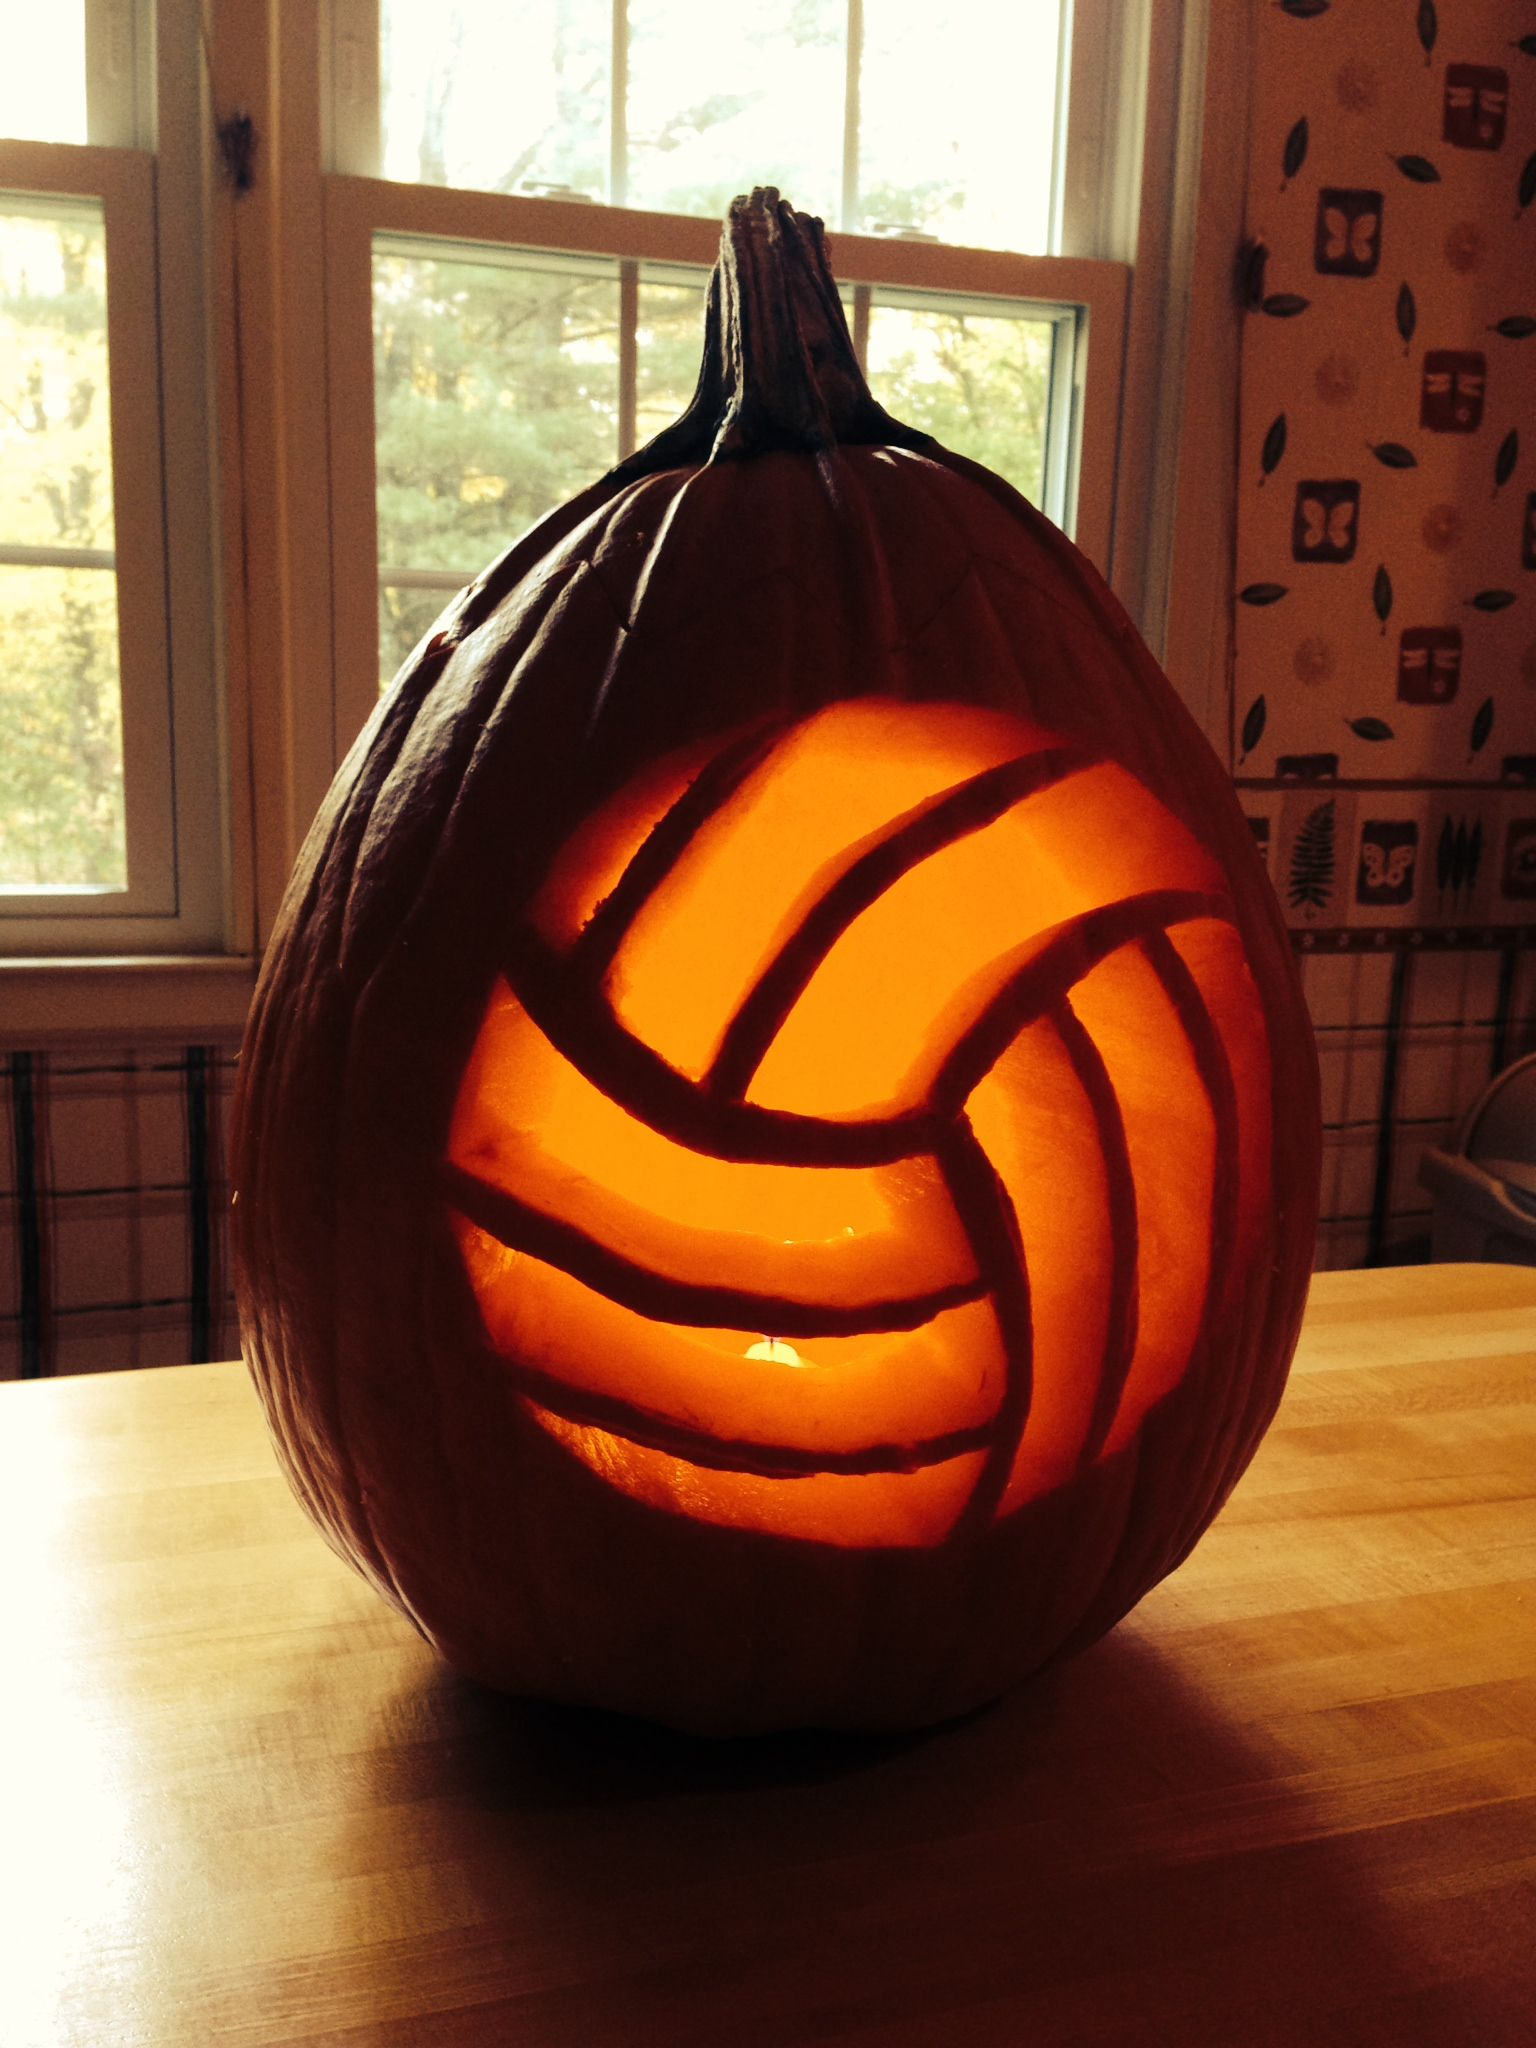 Well look at that a volleyball pumpkin awesome